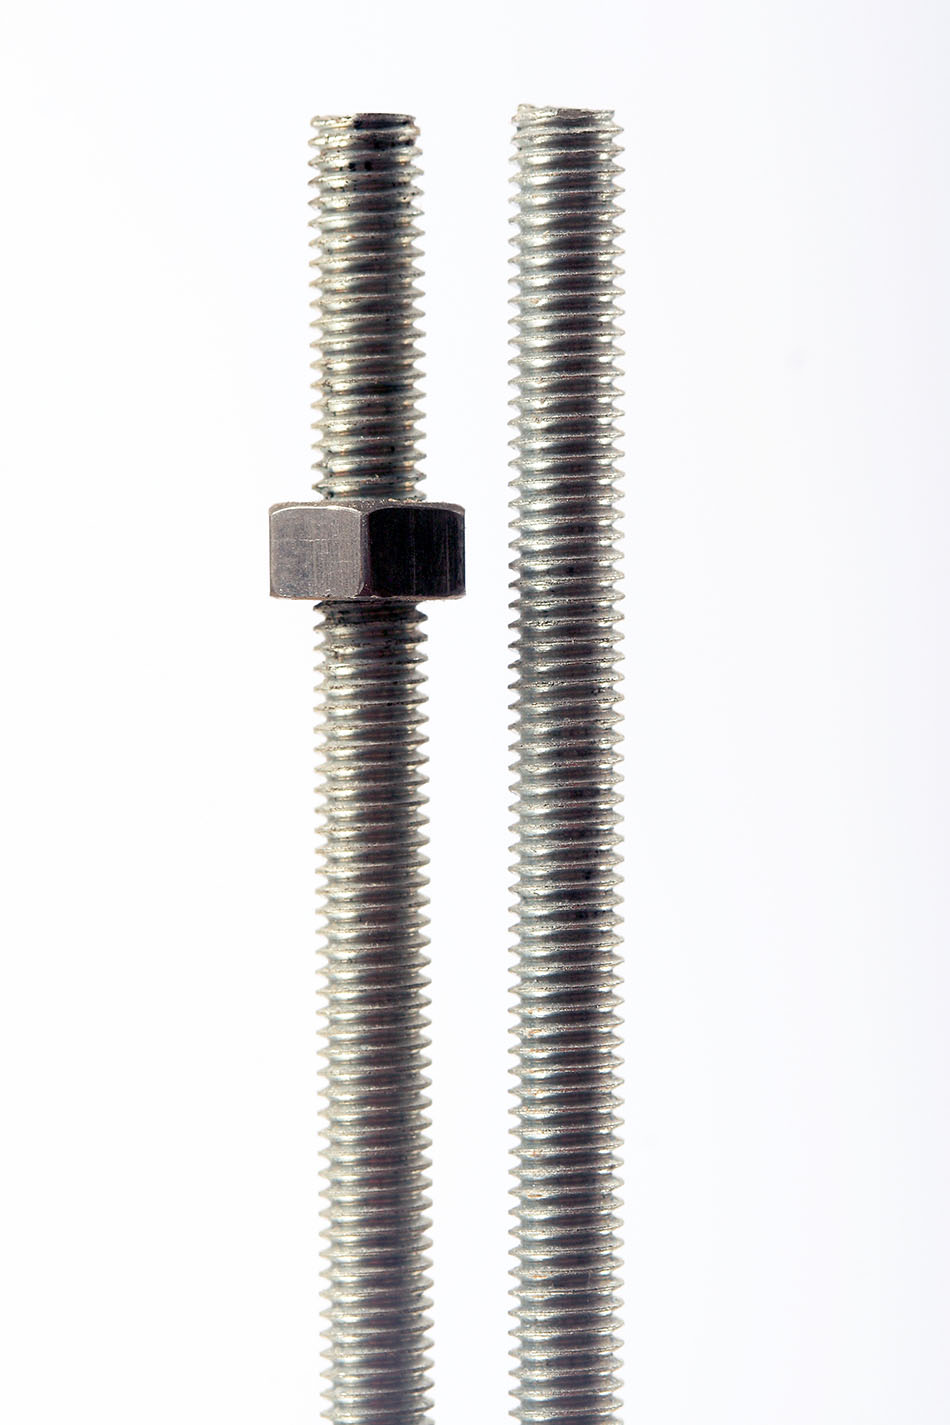 Long screws with a nut